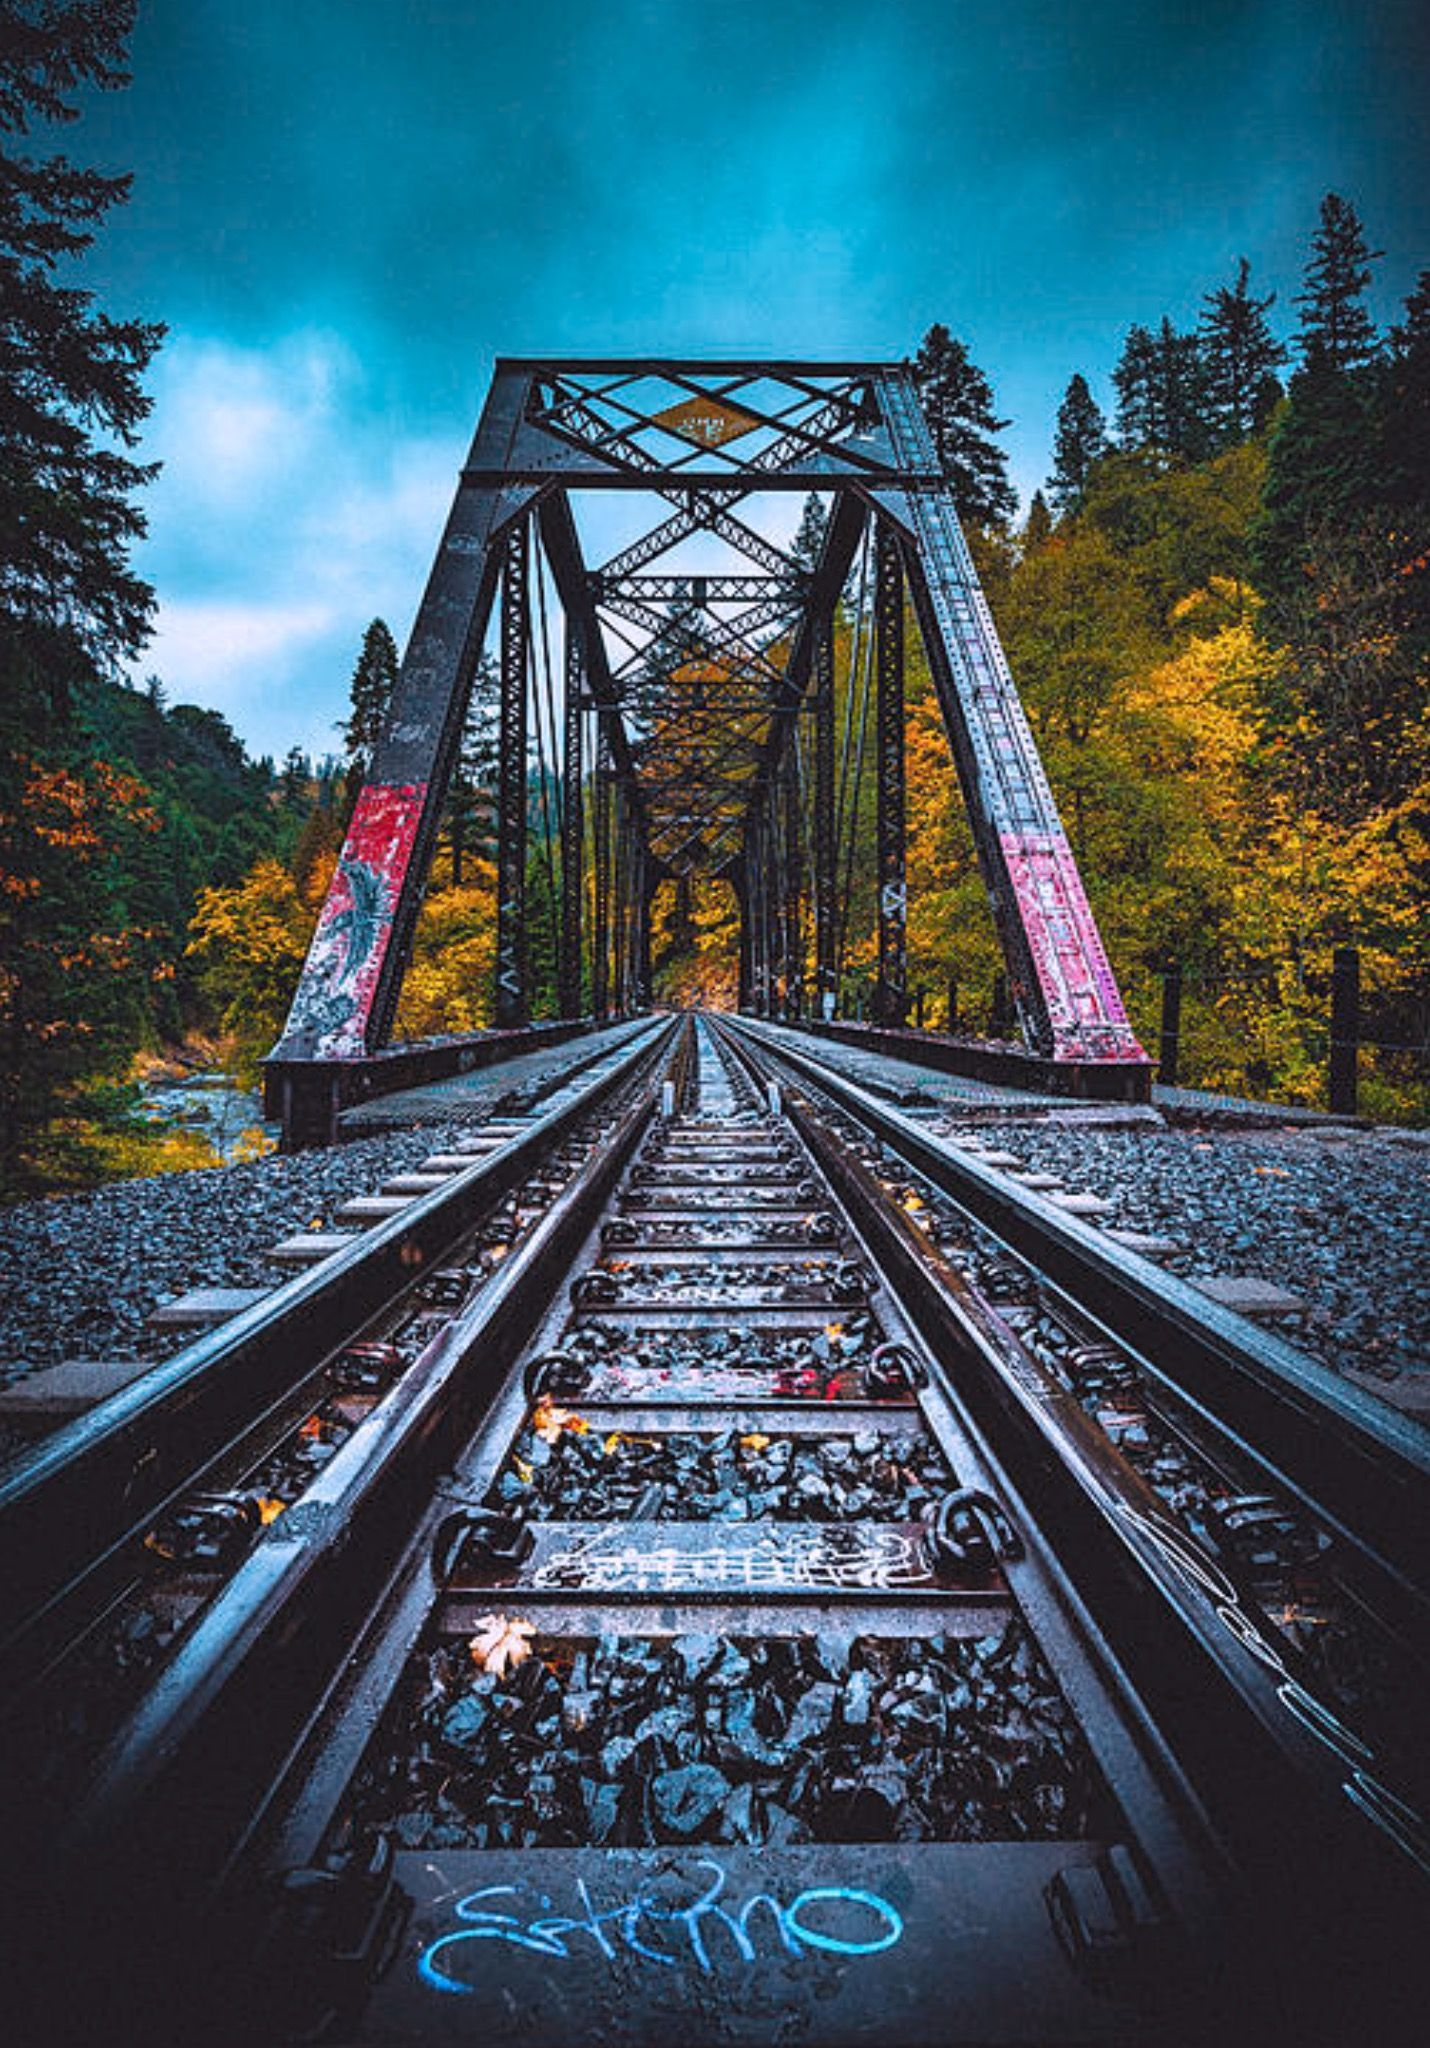 Dunsmir Bridge In California Is A Photograph By Kyle Duffy Source Fineartamerica Com Dslr Background Images Blur Photo Background New Background Images